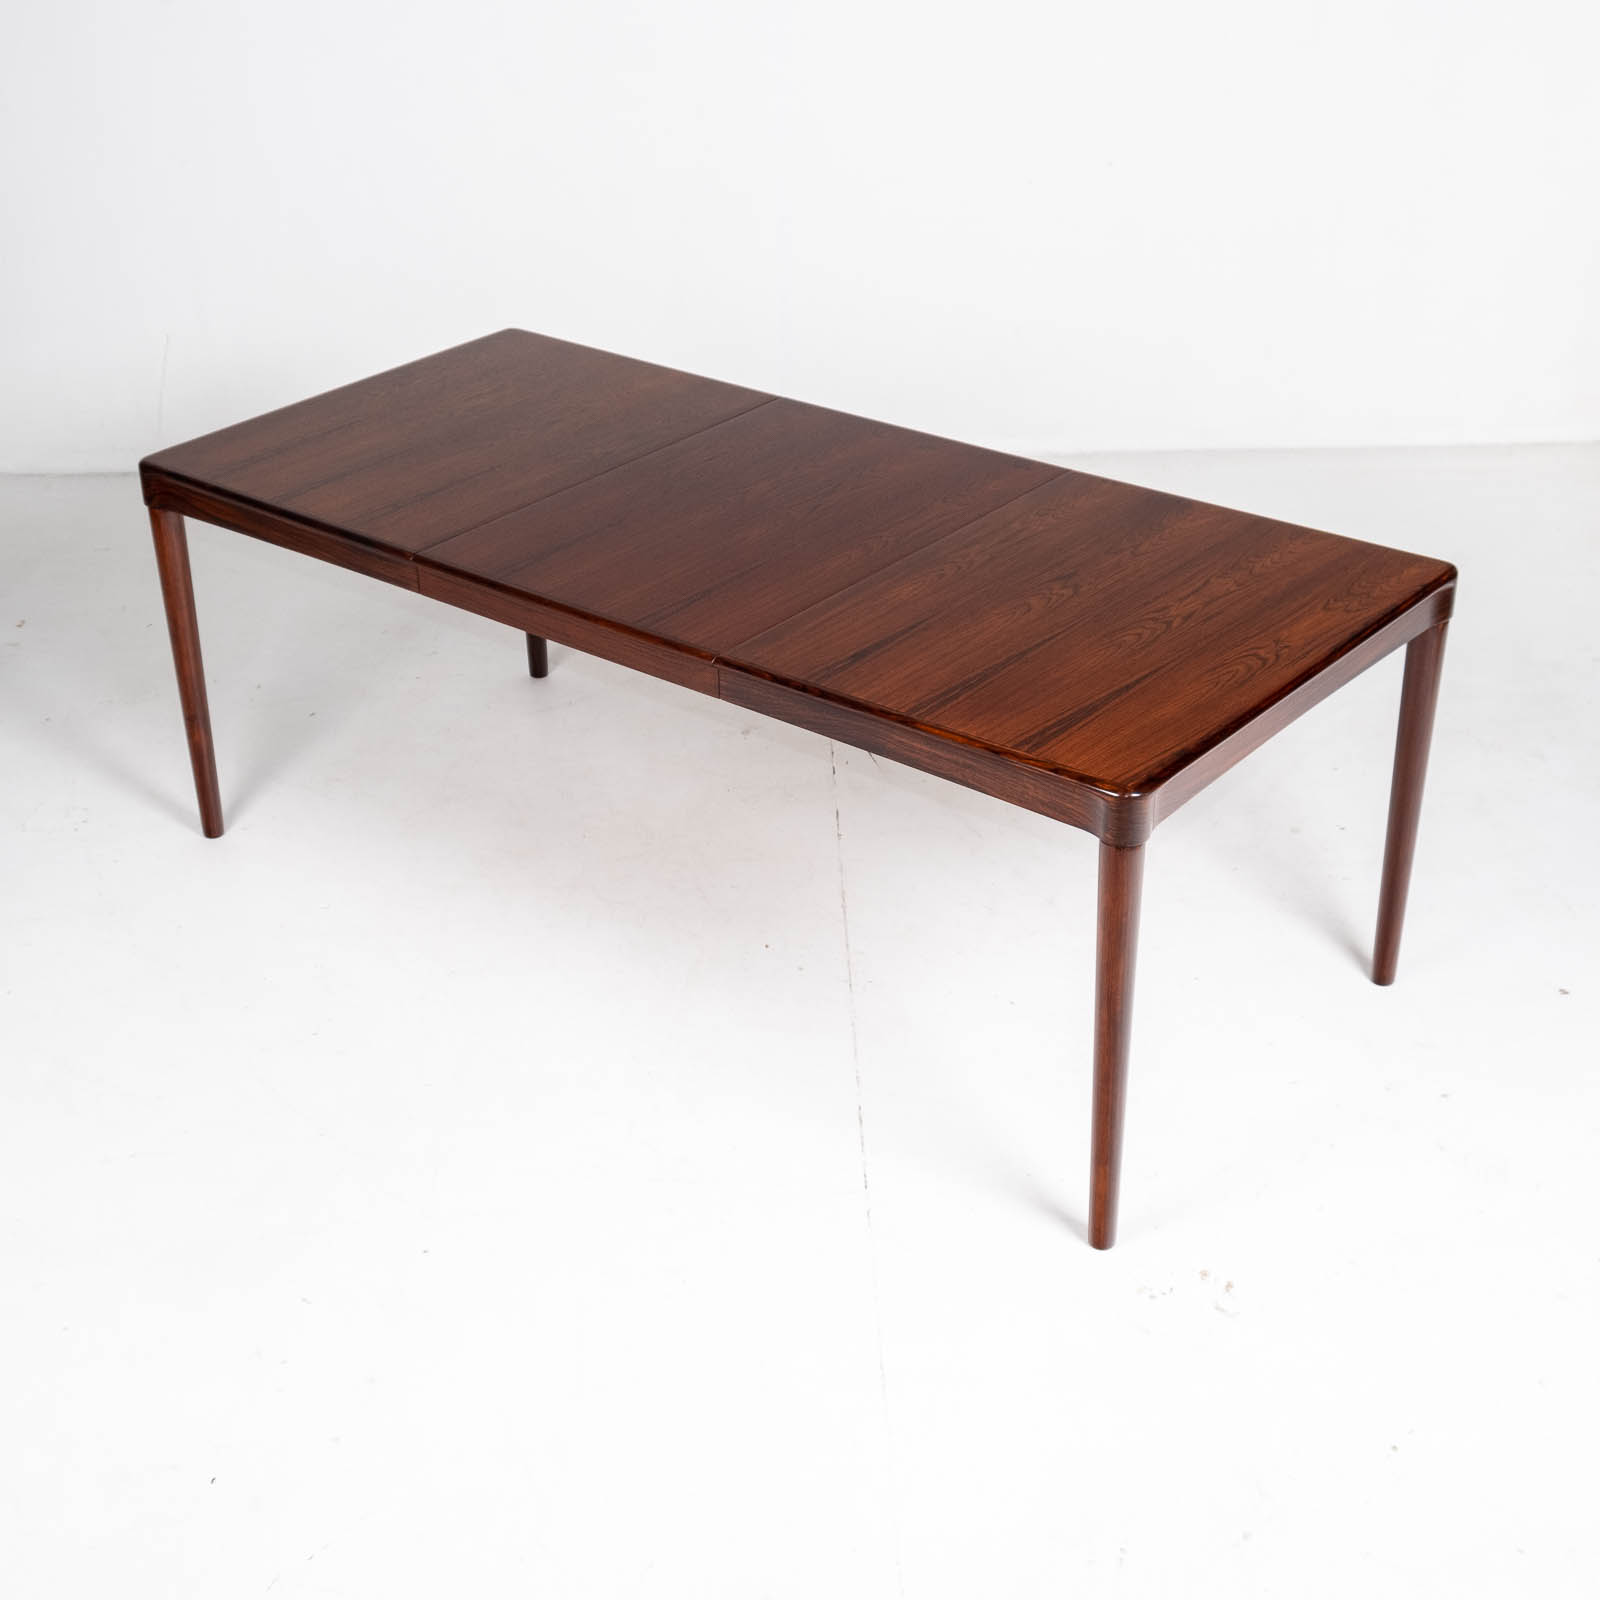 Extendable Dining Table By Hw Klein For Bramin In Rosewood, 1960s, Denmark4